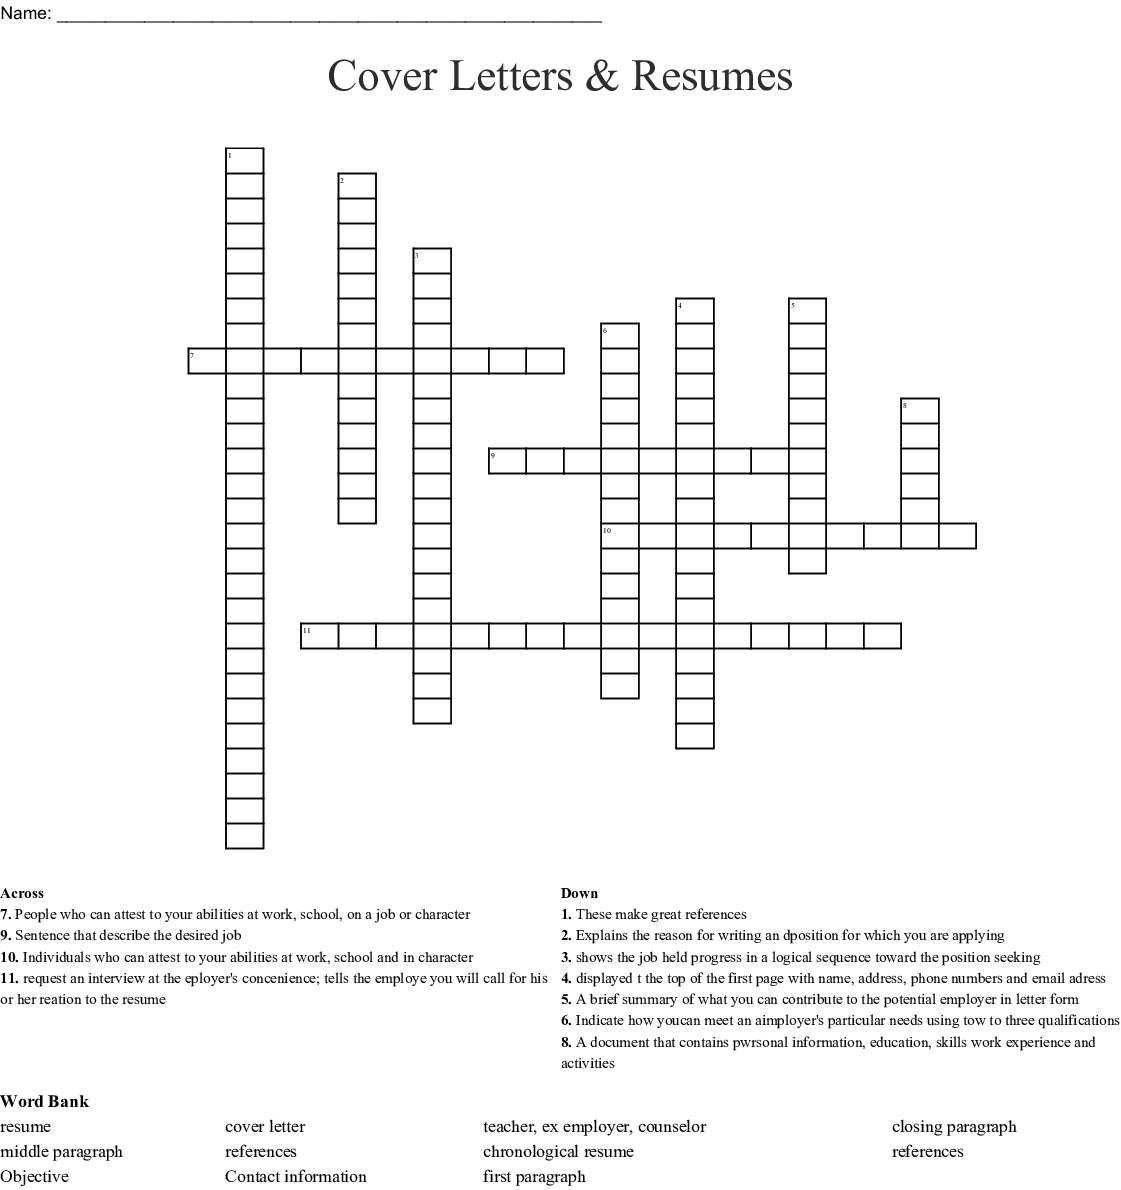 Resume Puzzle Word Search Wordmint throughout proportions 1121 X 1190